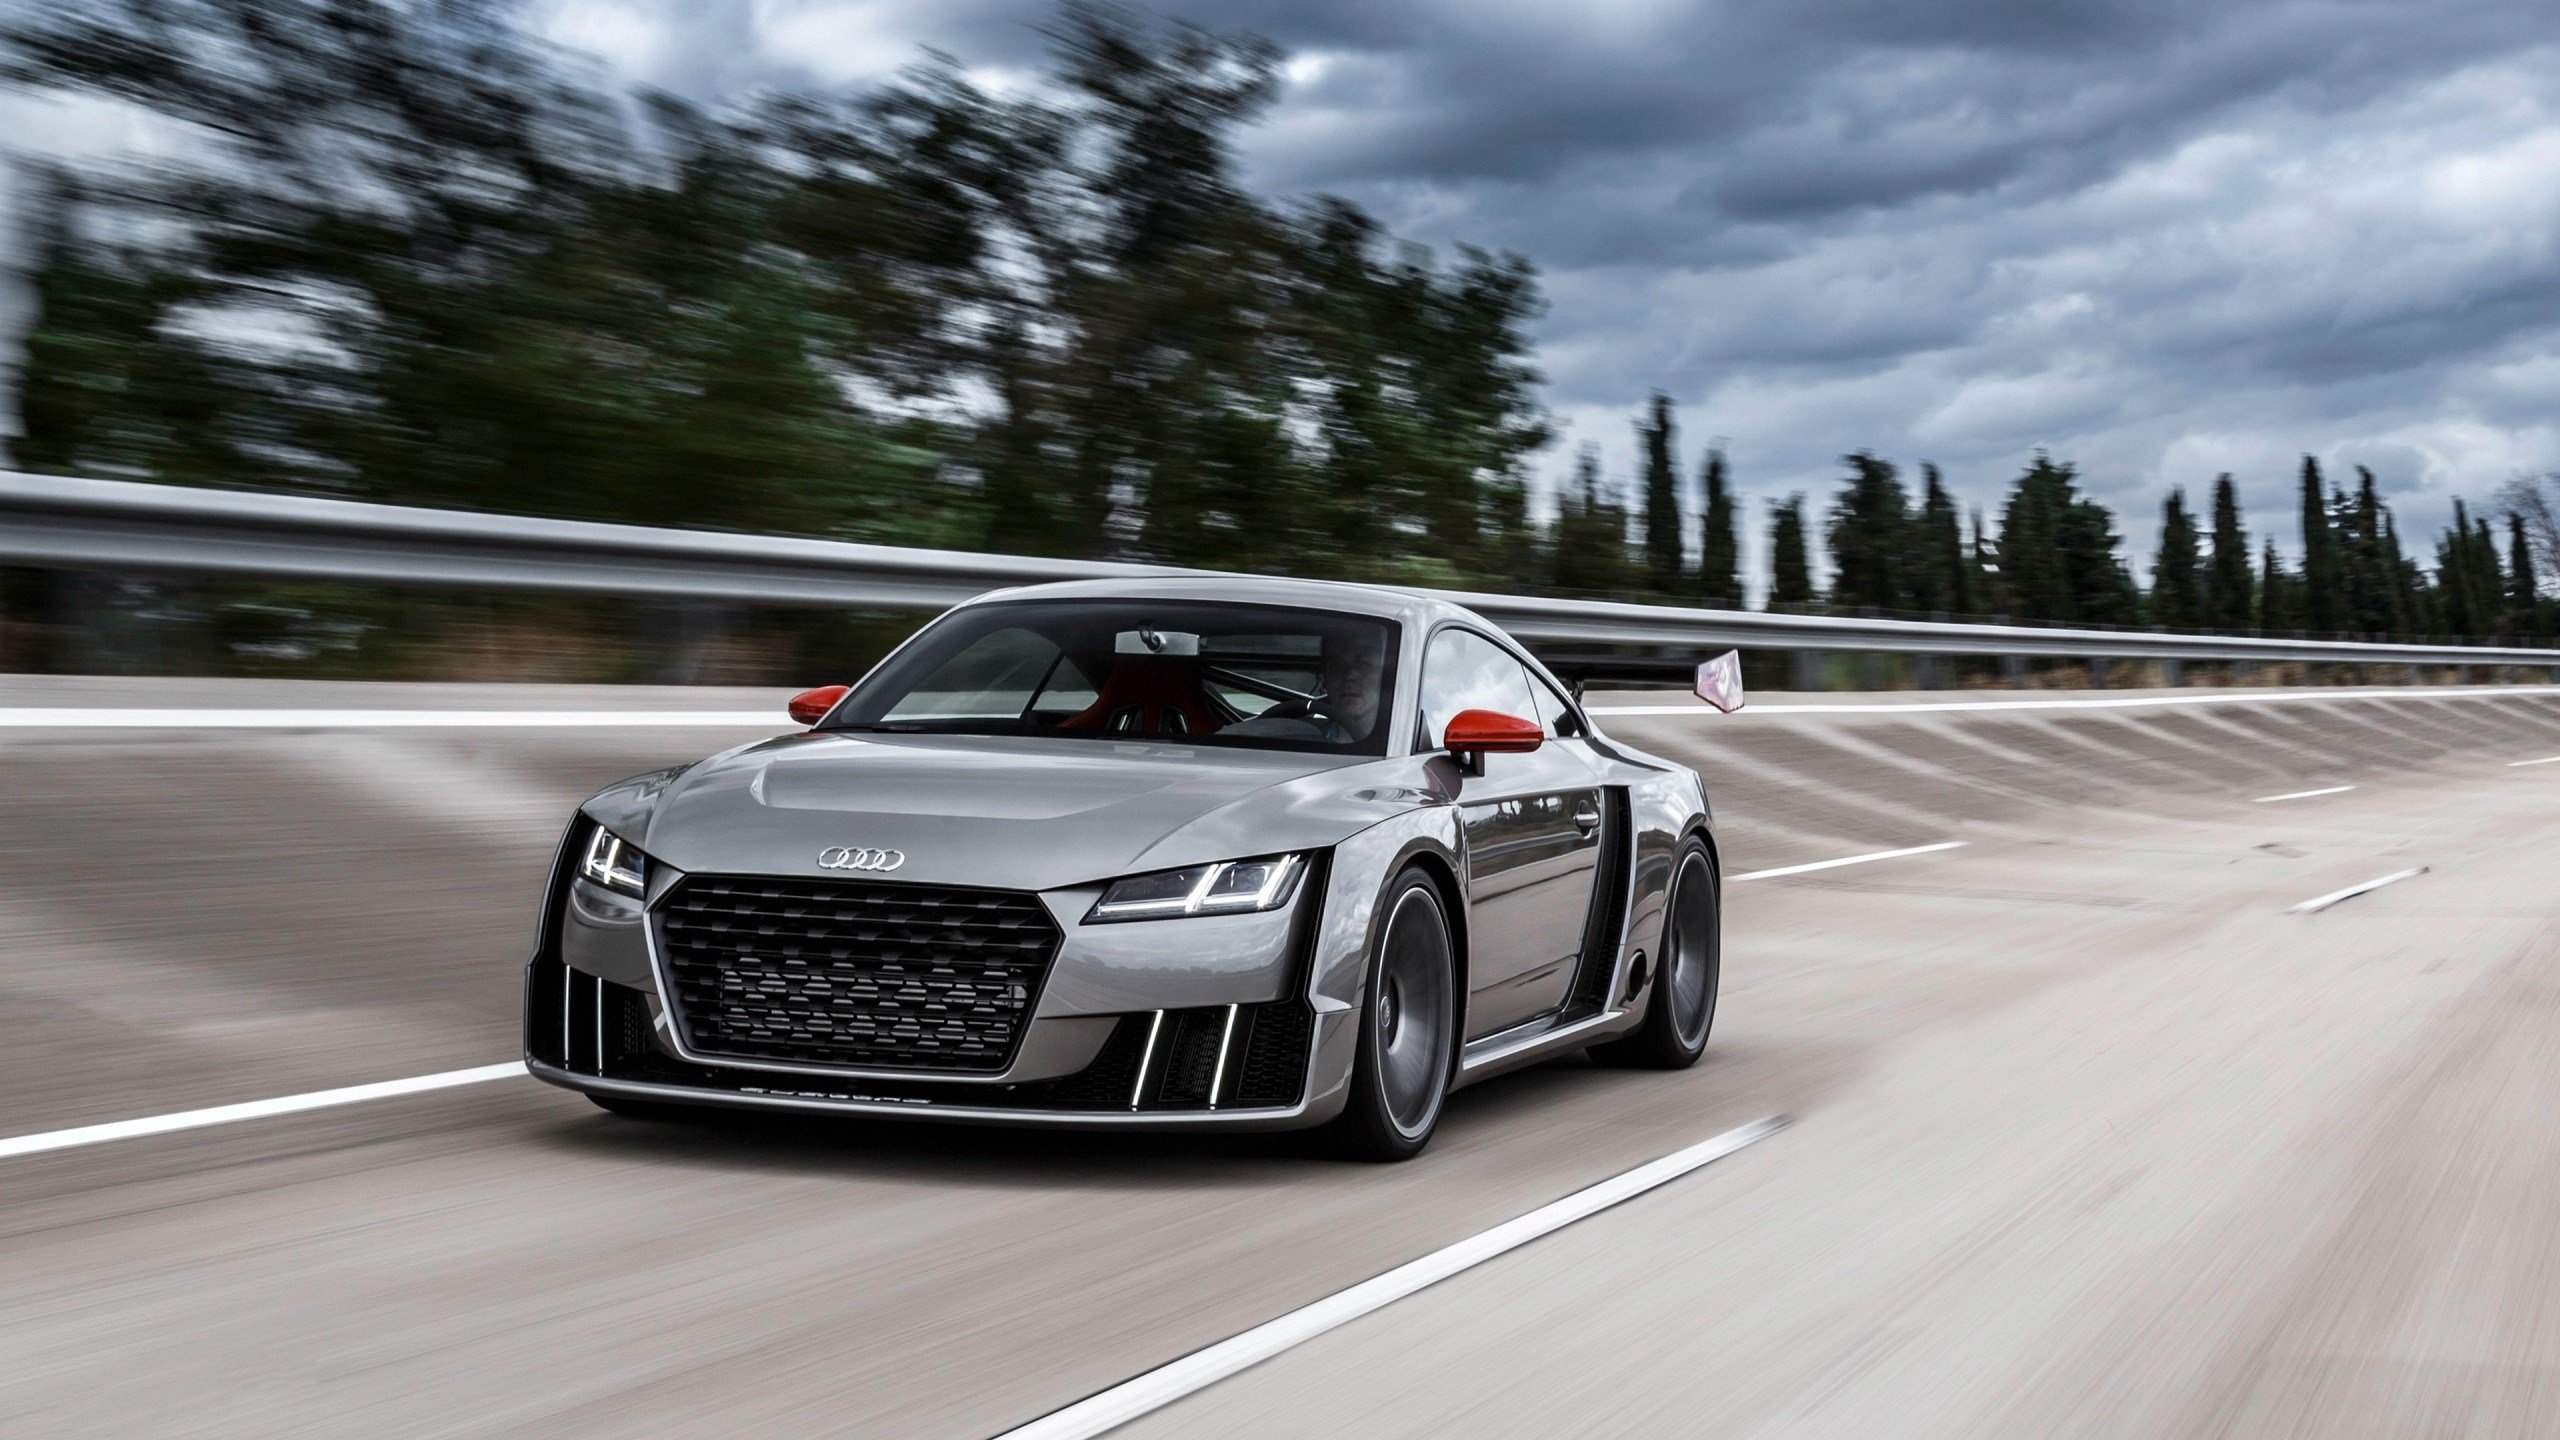 Latest 2016 Audi Tt Coupe Concept 2 Wallpaper Hd Car Wallpapers Free Download